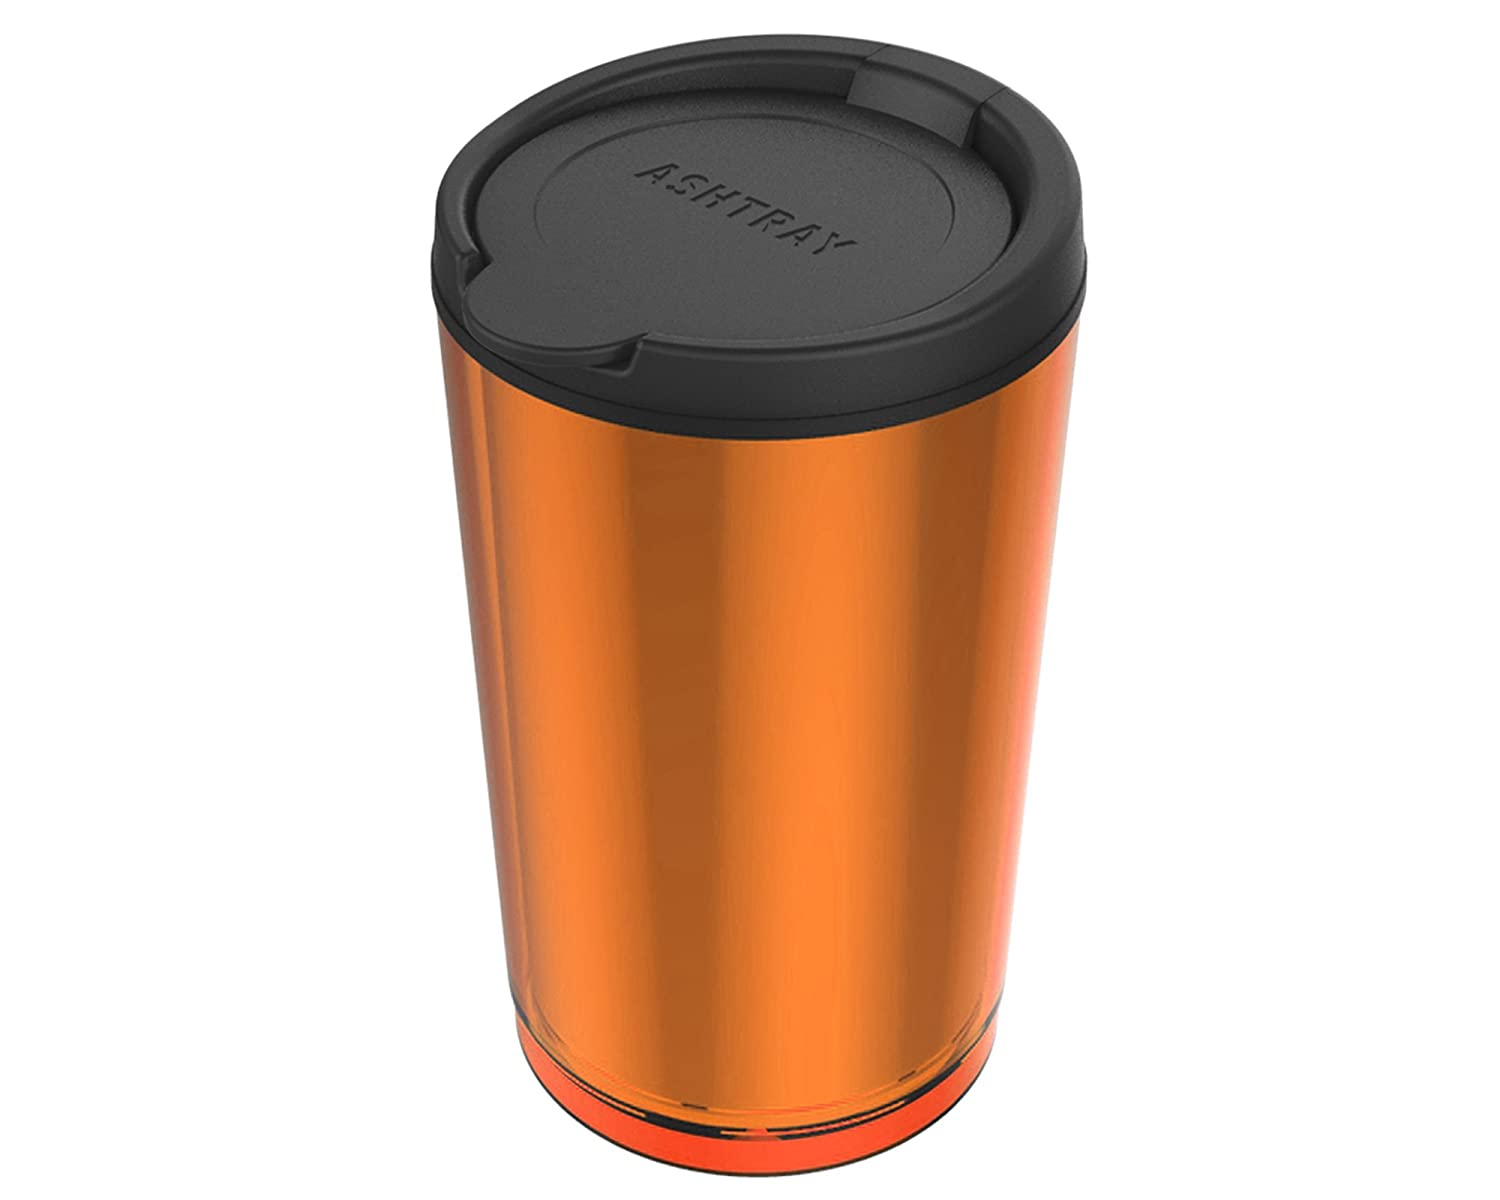 Hoshiko industry tumbler ash orange ED-205